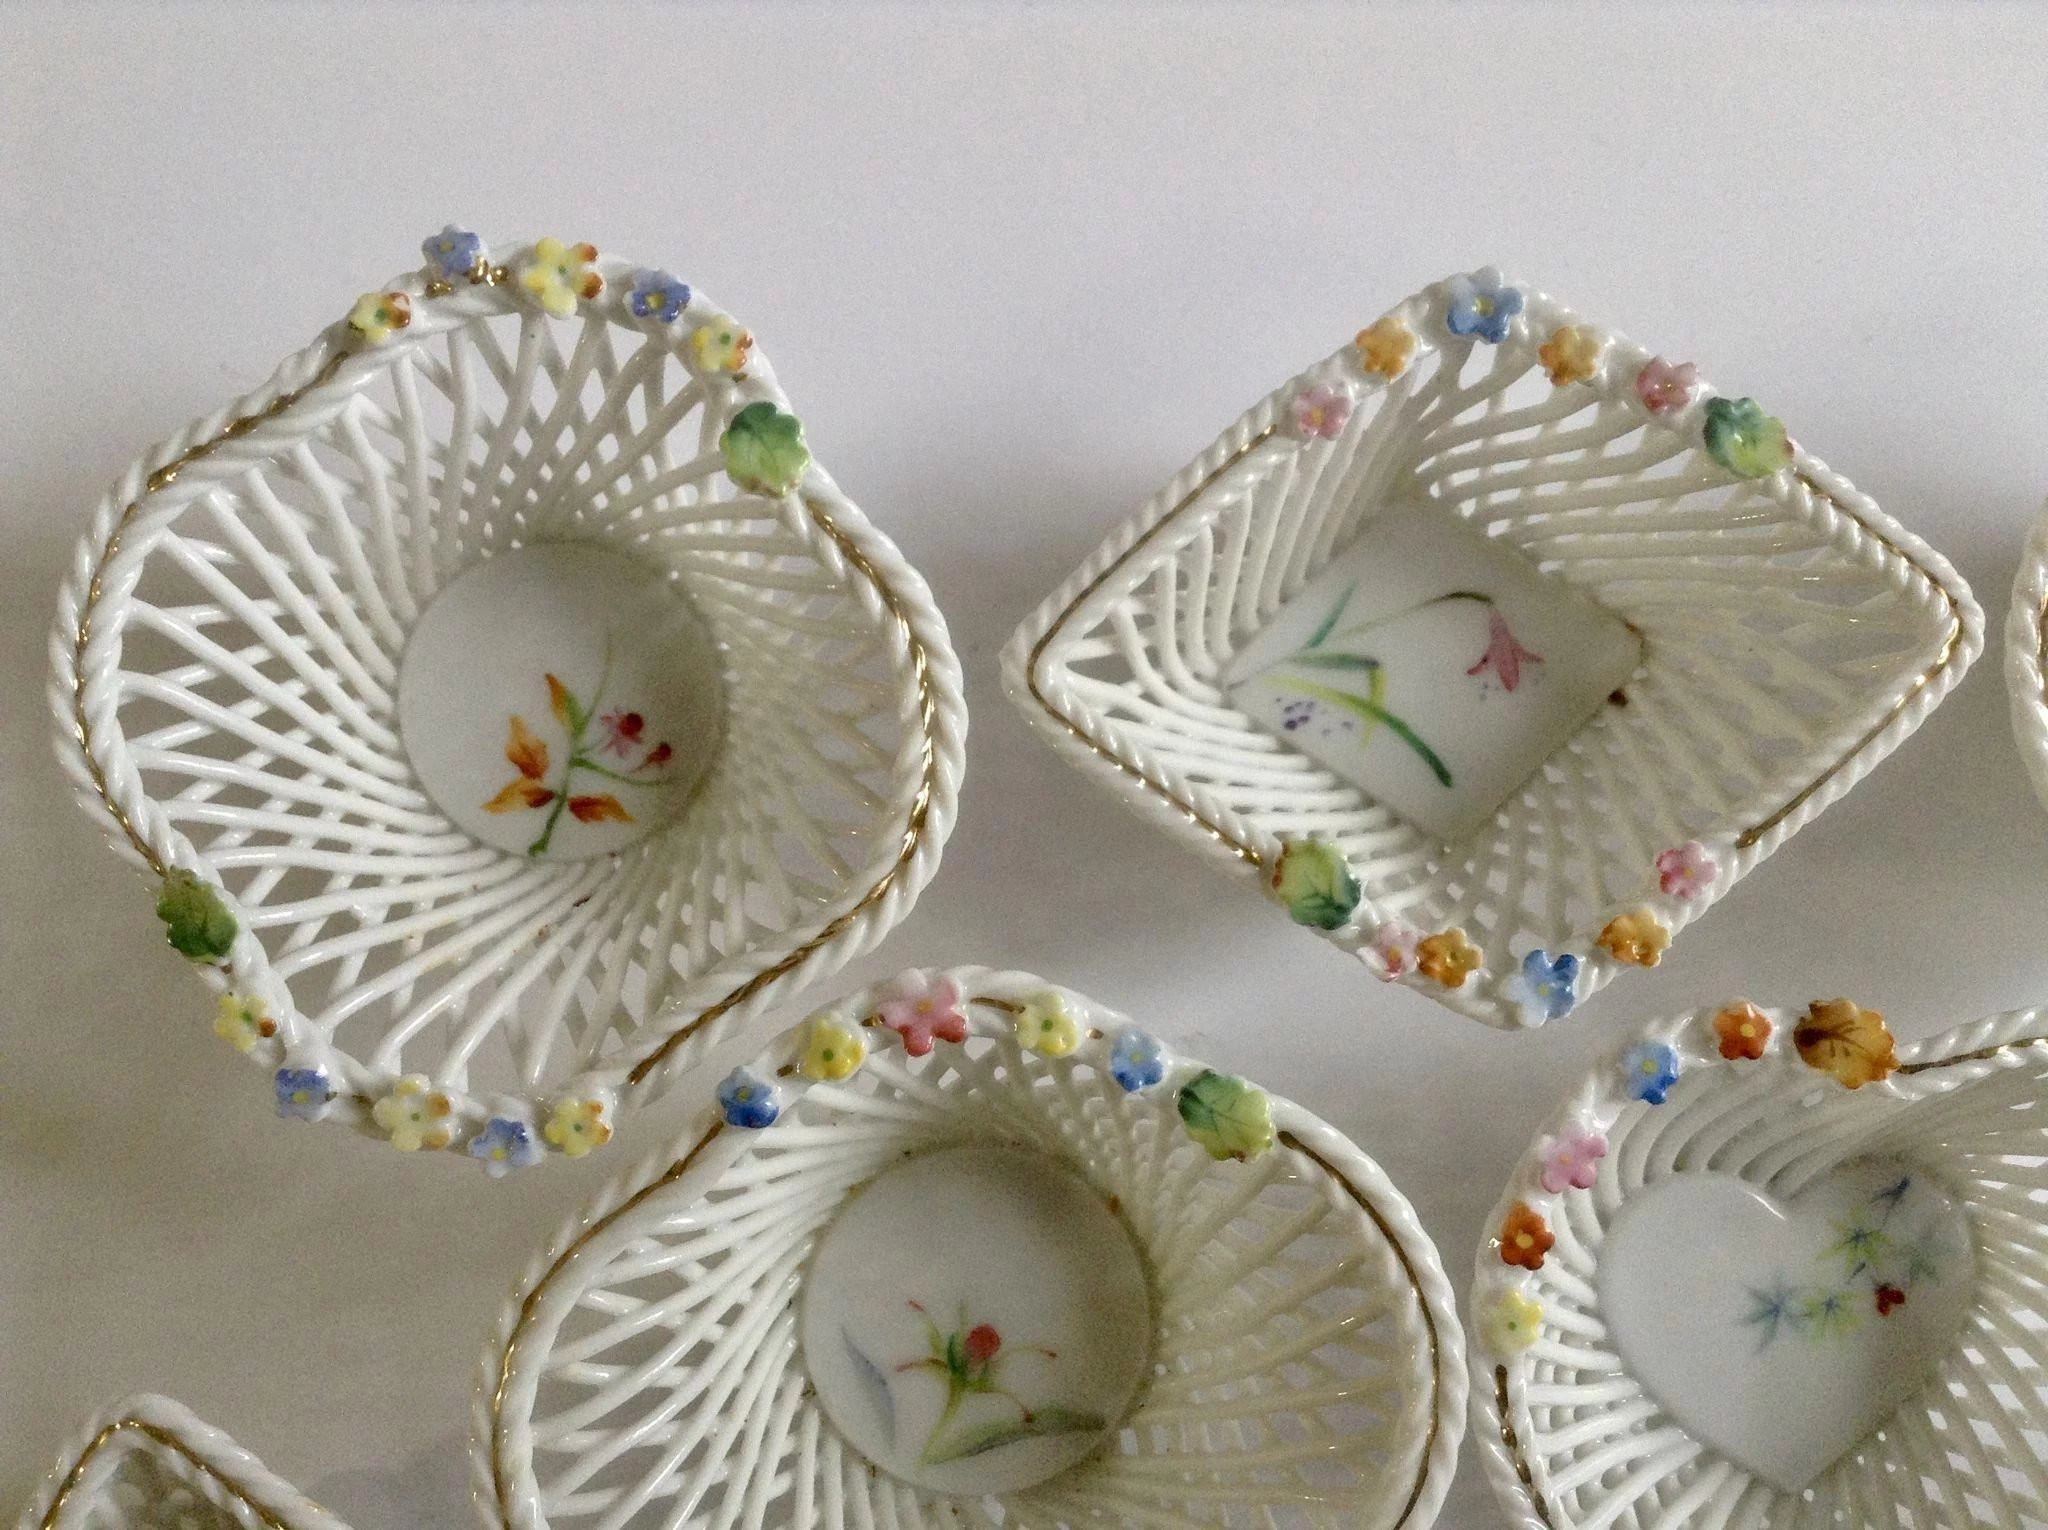 vintage ucagco ceramics japan vase of vintage ucagco japan floral lattice porcelain miniature baskets with click to expand a· vintage ucagco japan floral lattice porcelain